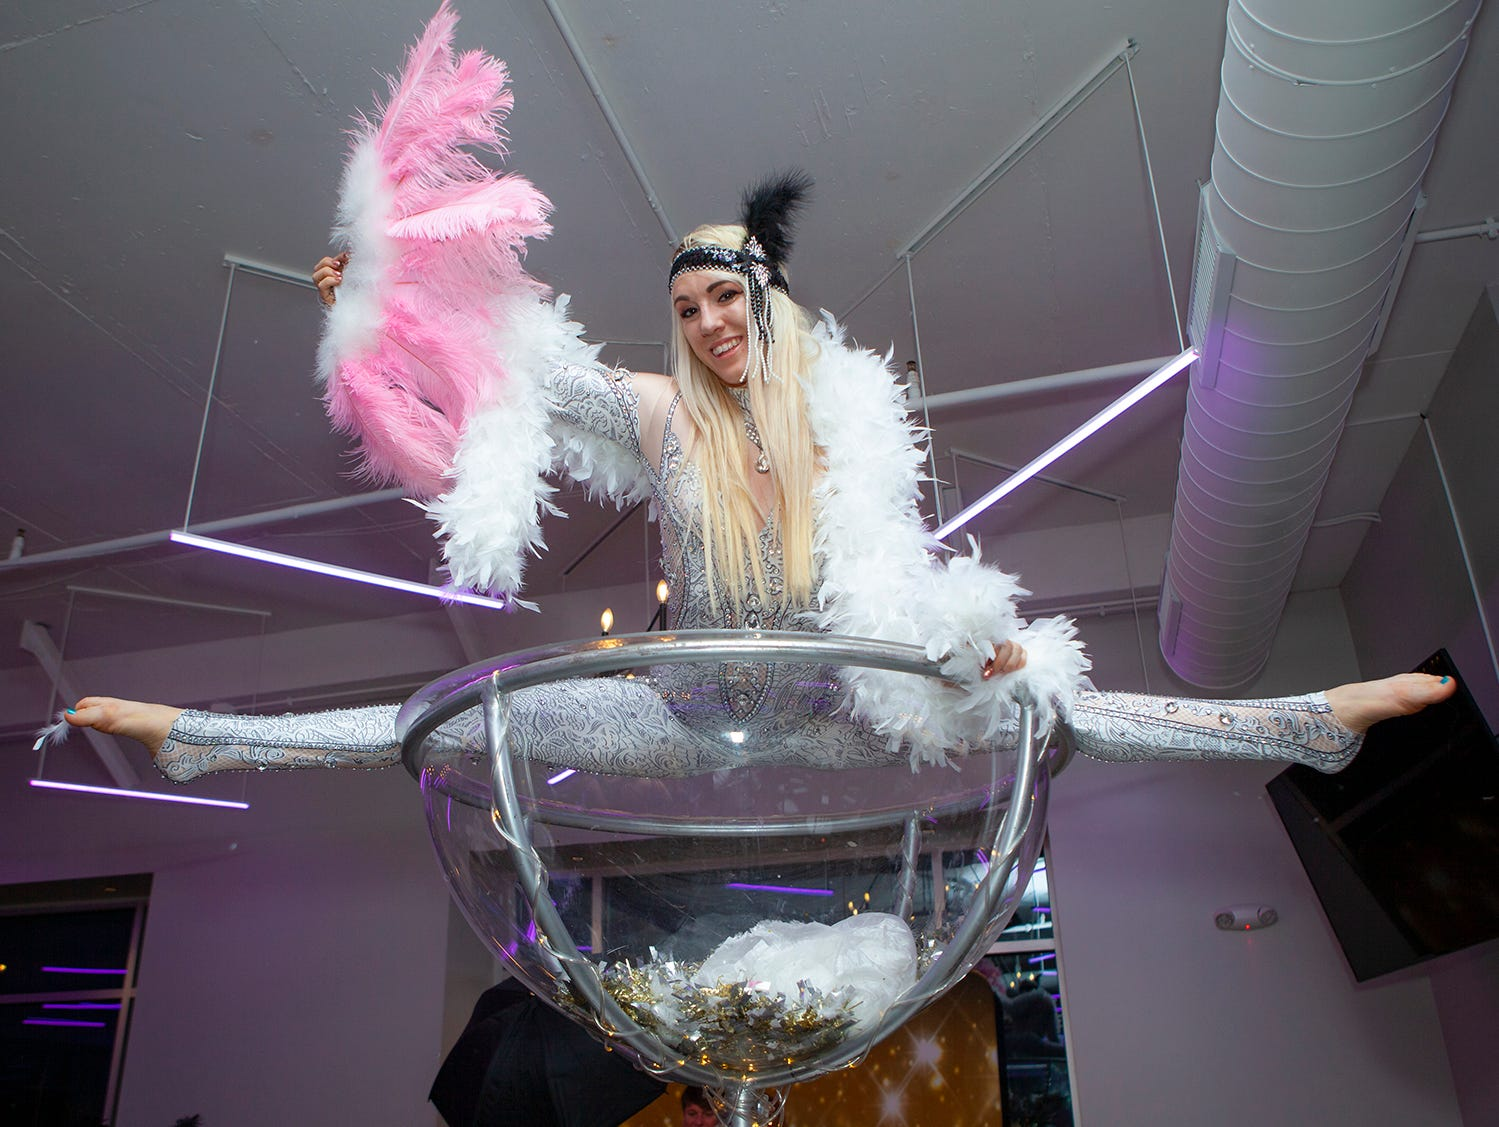 Grace Good with Beyond Wings Circus entertains the crowd at The Gatsby Party, hosted by the Alzheimer's Association at The View at Fountains Saturday, March 16, 2019.